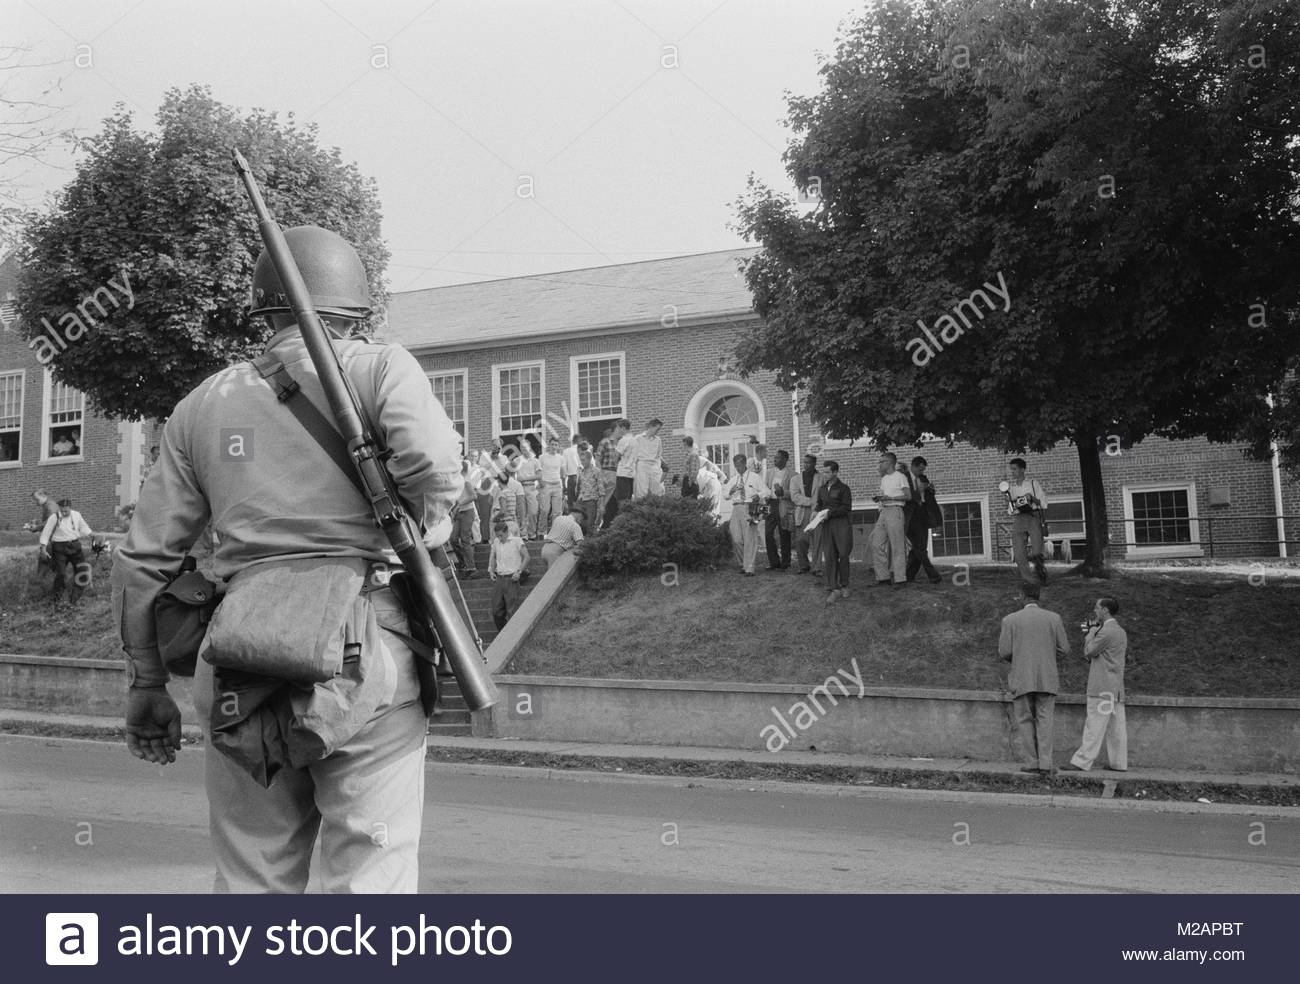 Armed National Guardsman on duty at Little Rock High School - Stock Image